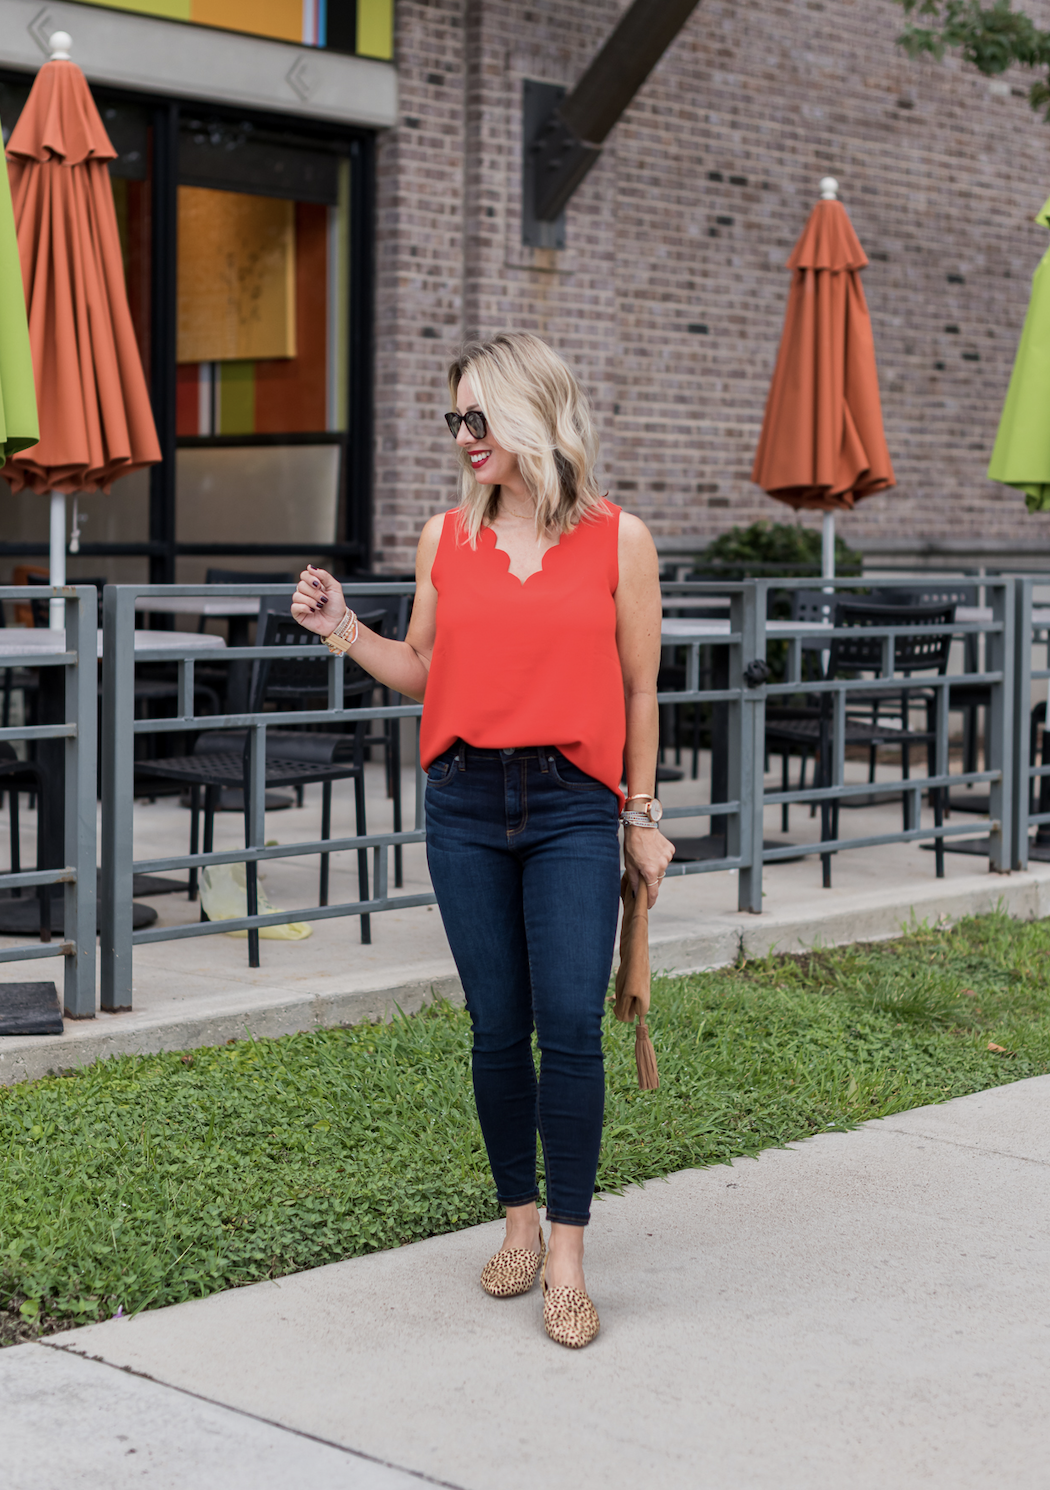 Scalloped Top With Jeans